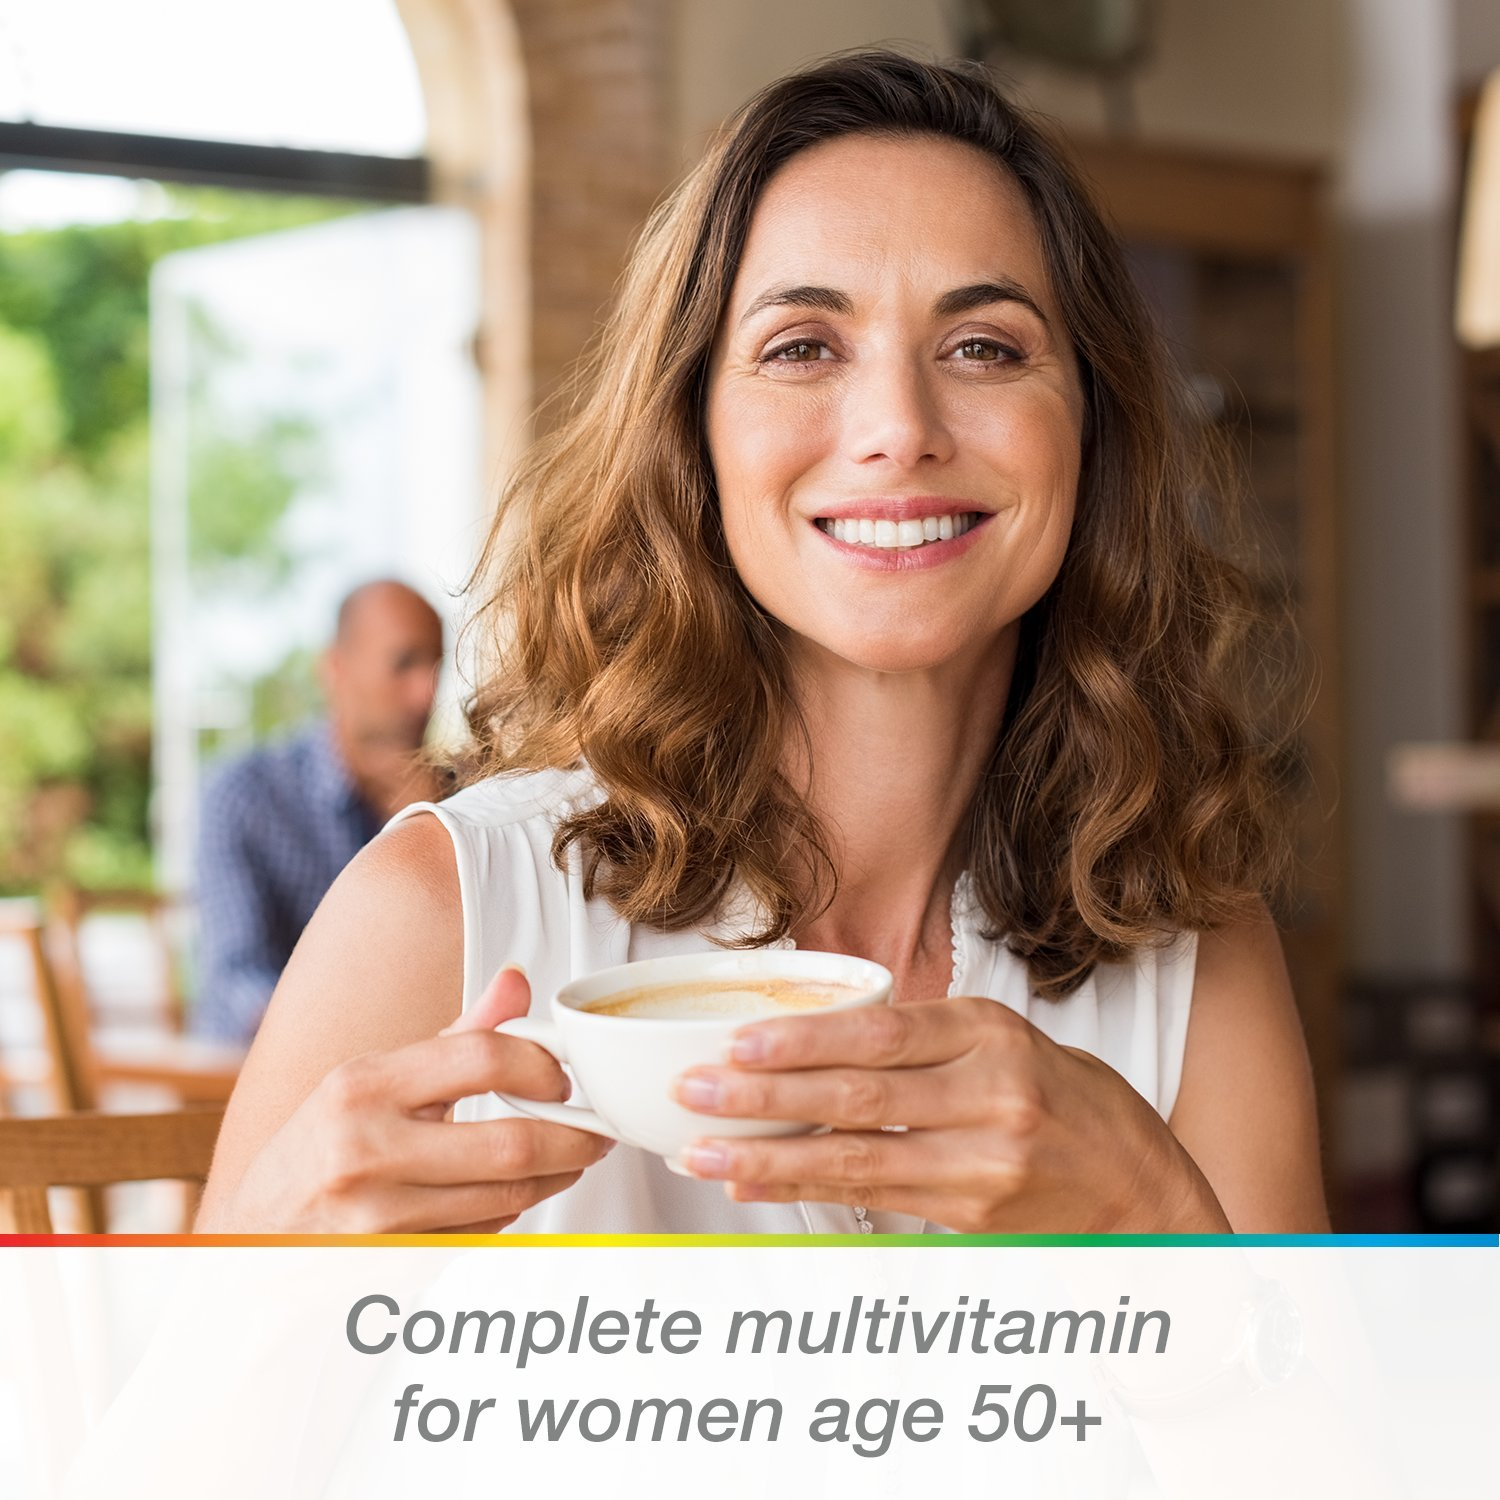 Centrum Silver Women (200 Count) Multivitamin / Multimineral Supplement Tablet, Vitamin D3, Age 50+ by Centrum (Image #2)